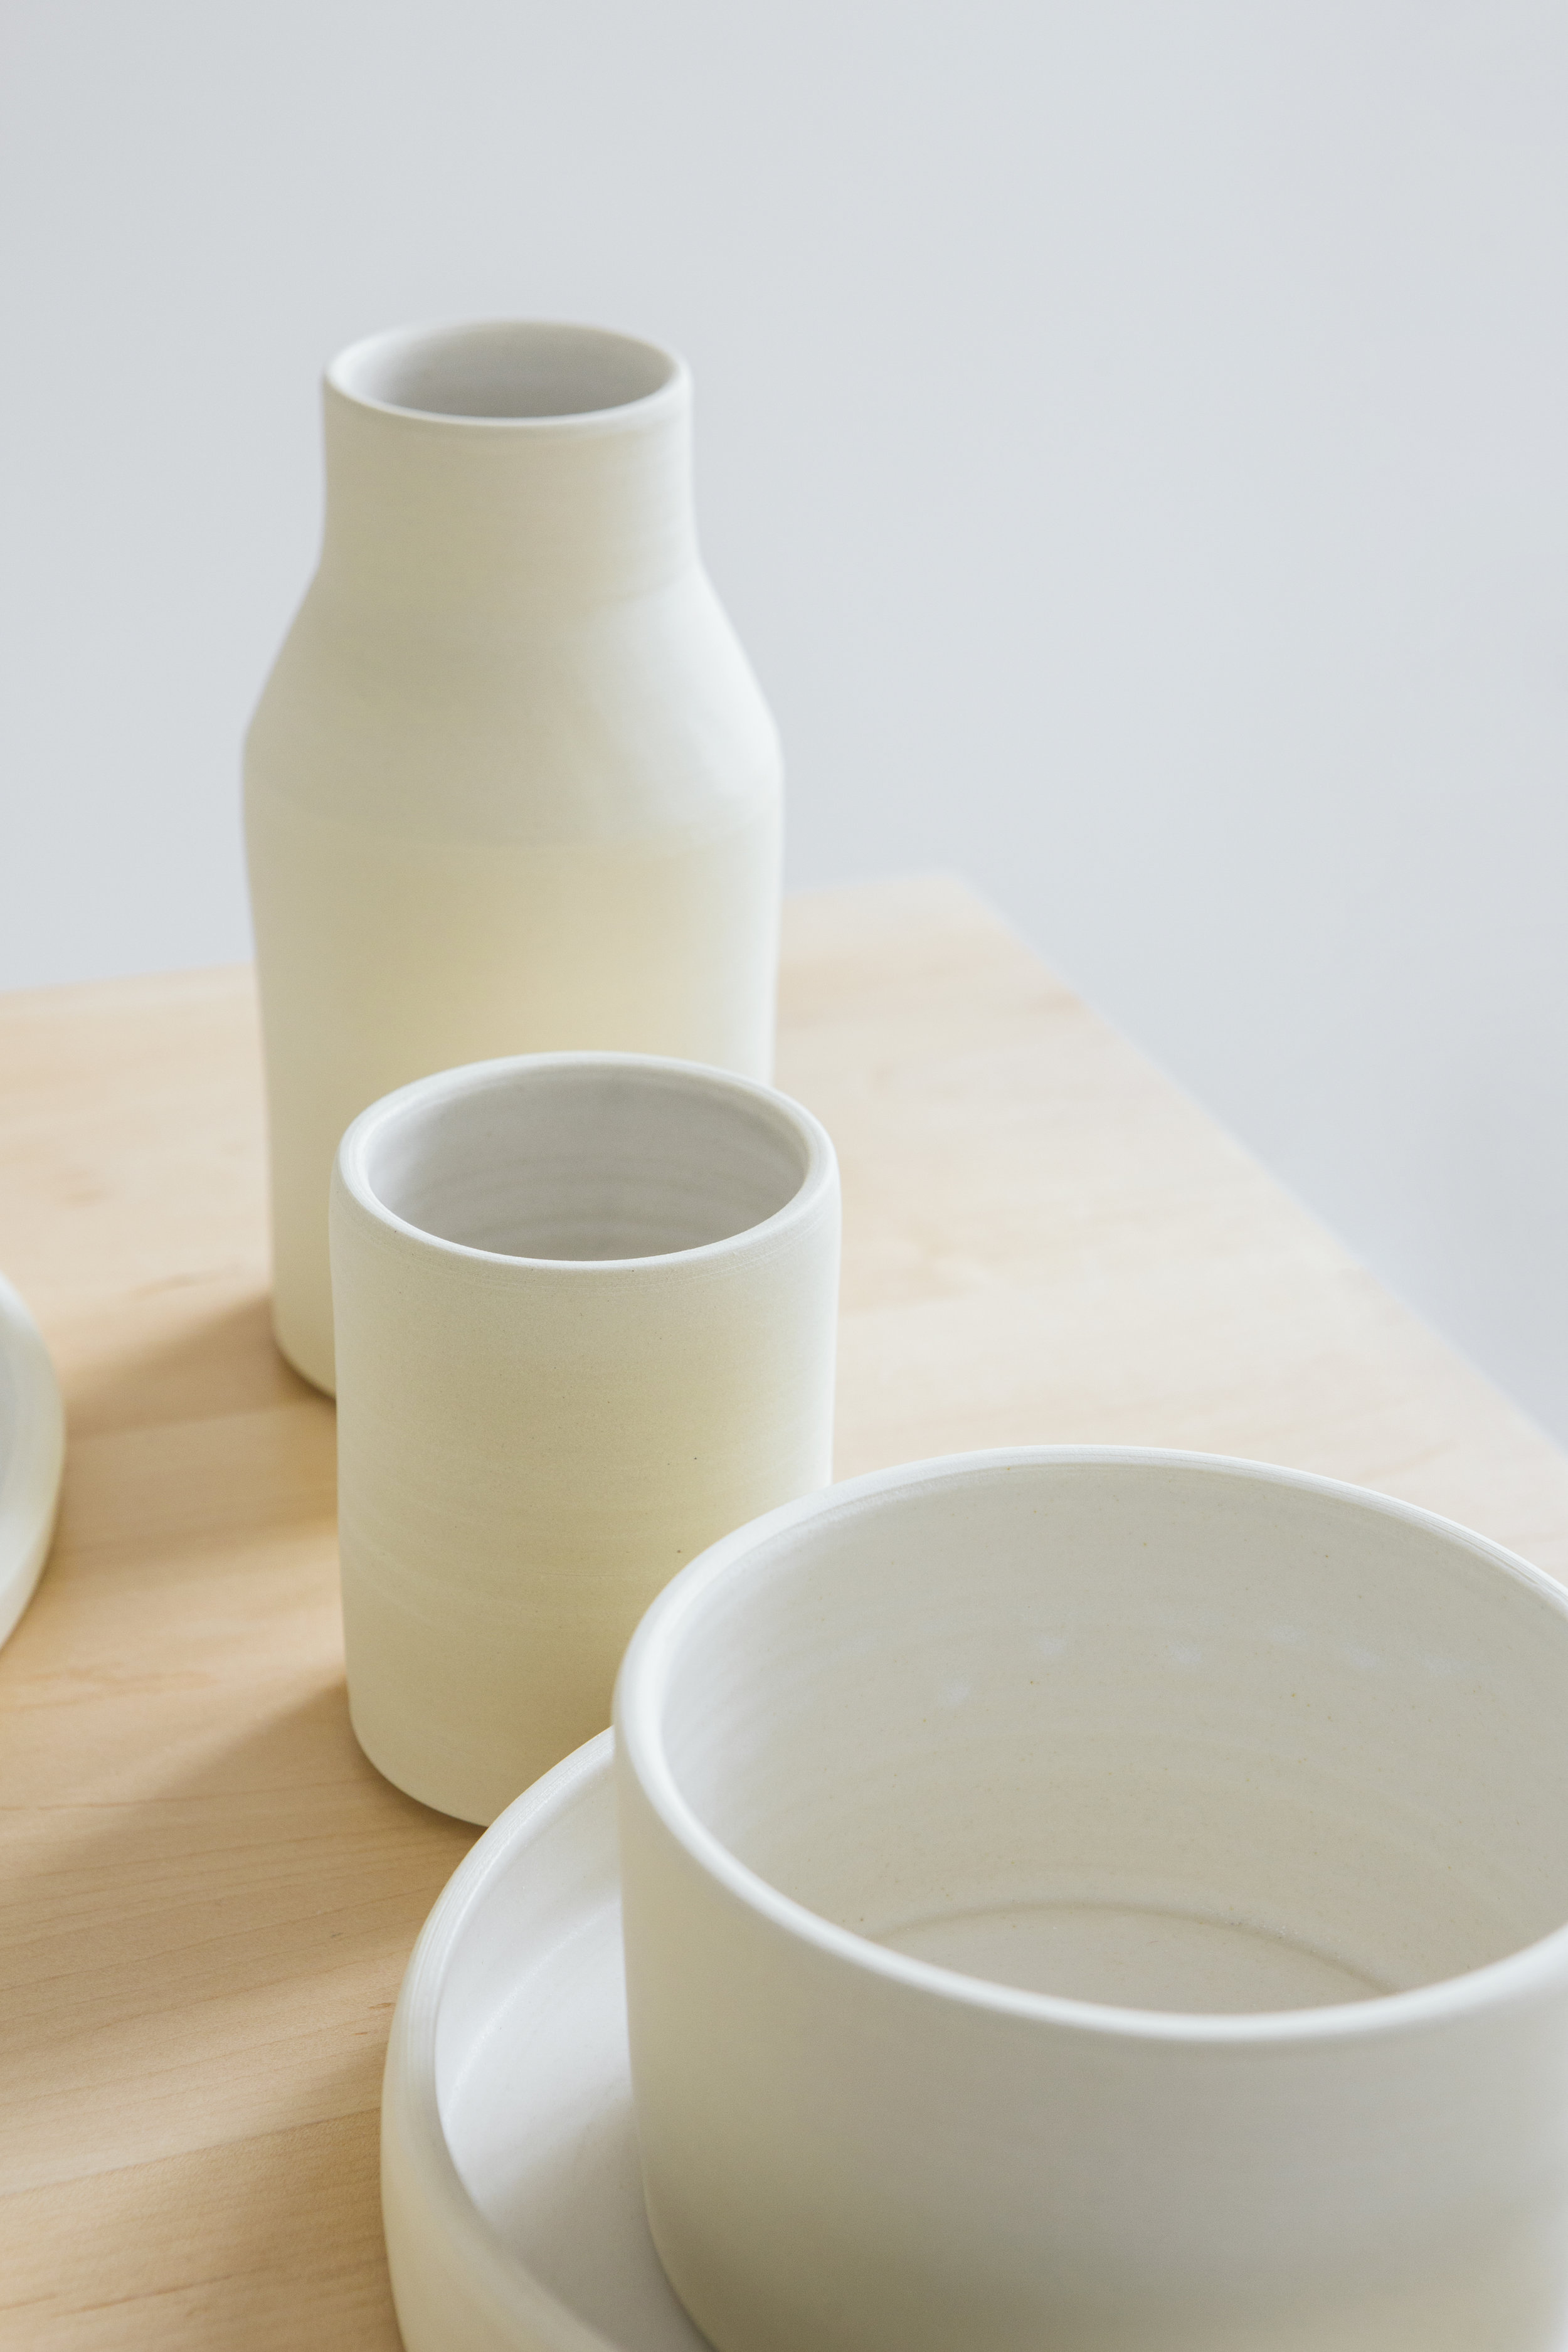 - ________________________________ FOR GATHERINGS OF INTENTION MAKING FOOD SHINE WITH MINIMAL DESIGN